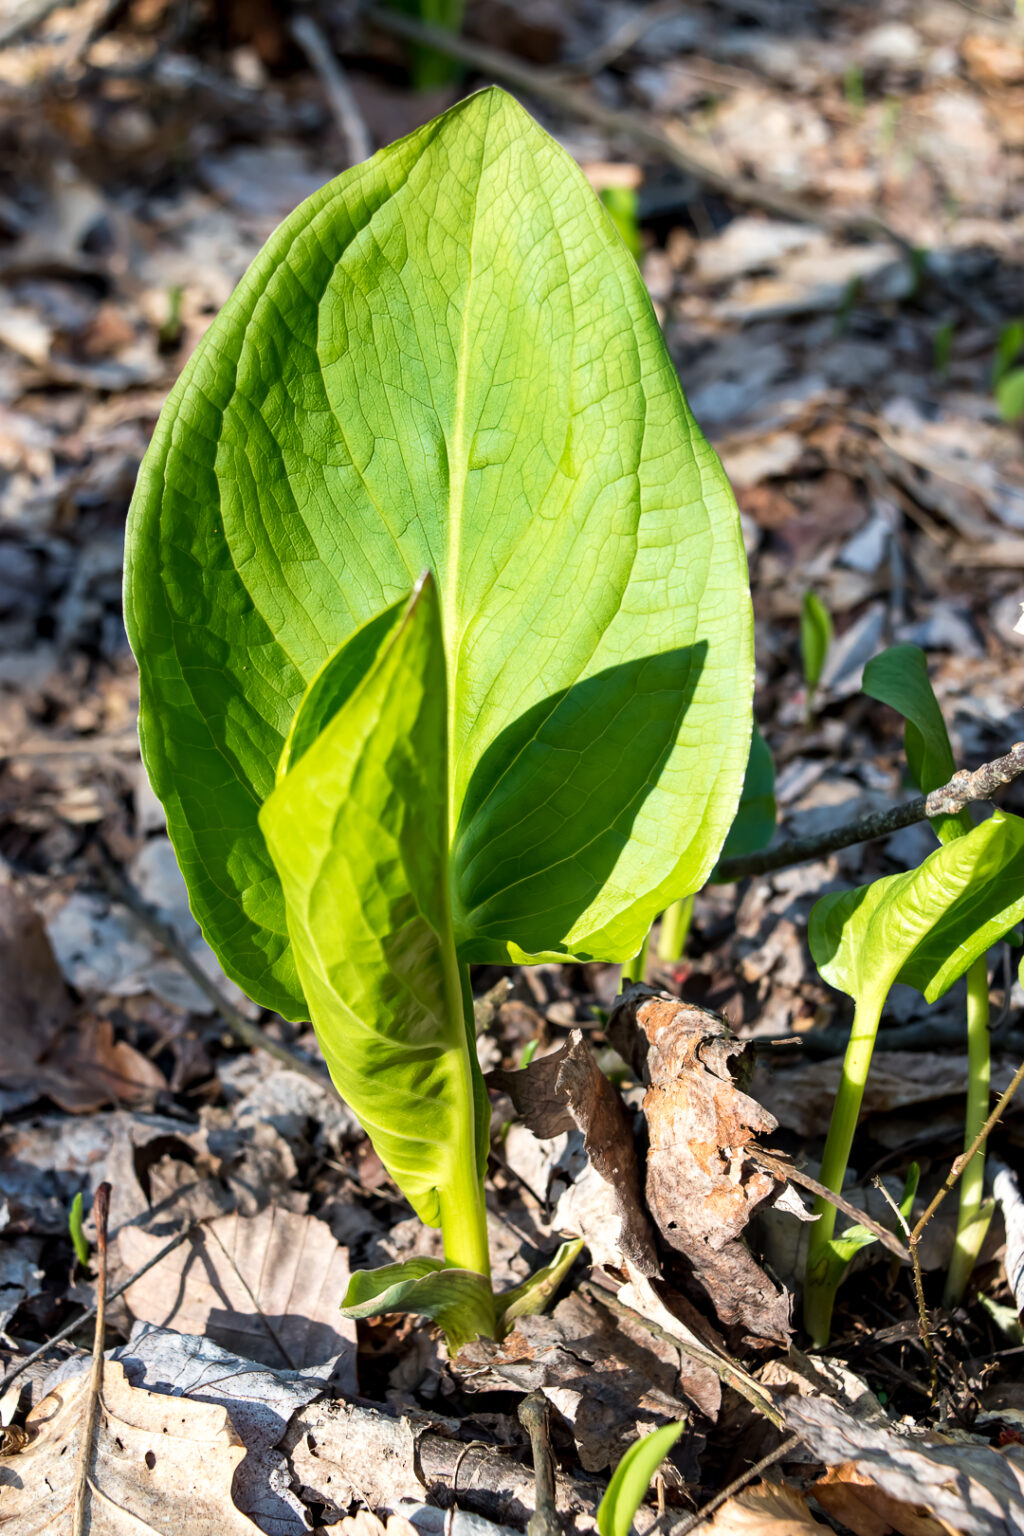 Skunk Cabbage leaves sprouting